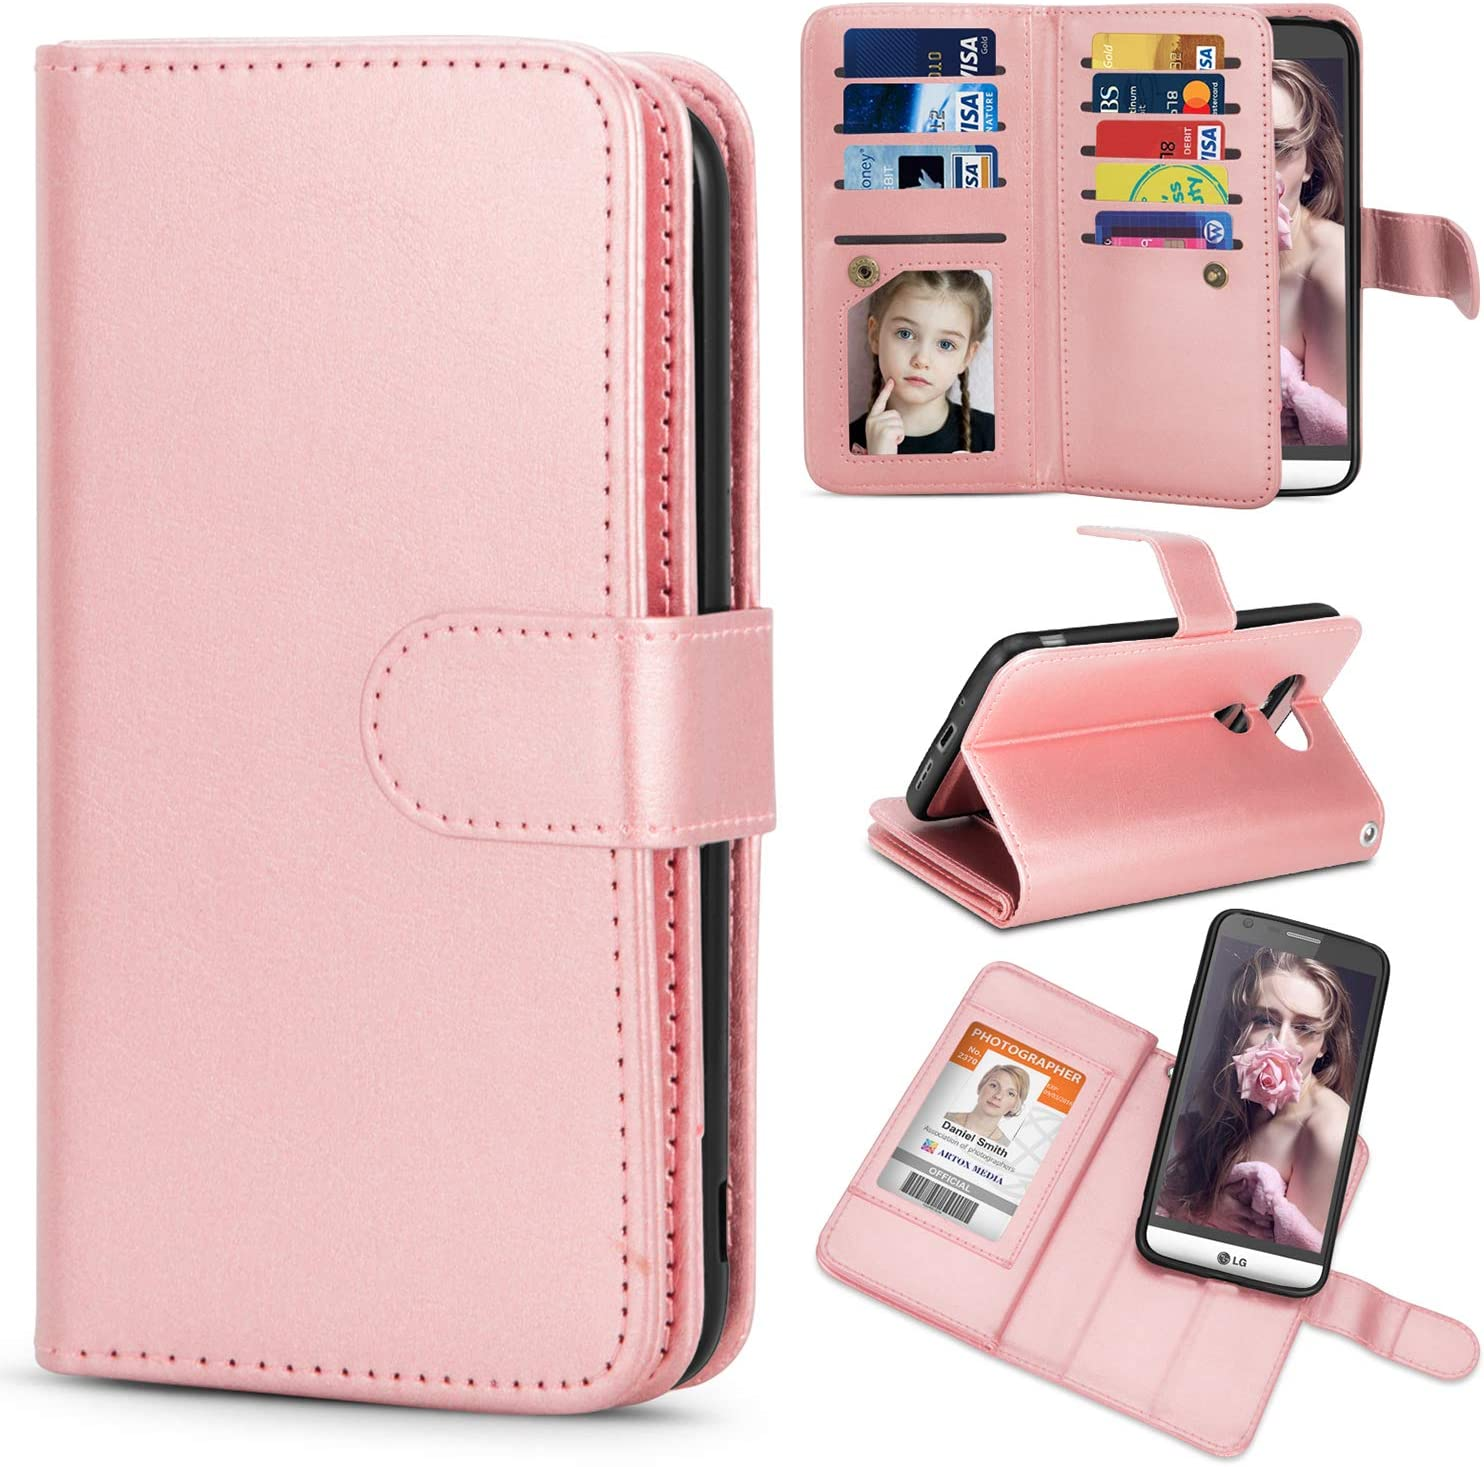 TILL for LG G5 Case, TILL LG G5 Wallet Case PU Leather Carrying Flip Cover [Cash Credit Card Slot Holder & Kickstand] Detachable Magnetic Folio Slim Protective Hard Case Shell for LG G5 [Rose Gold]